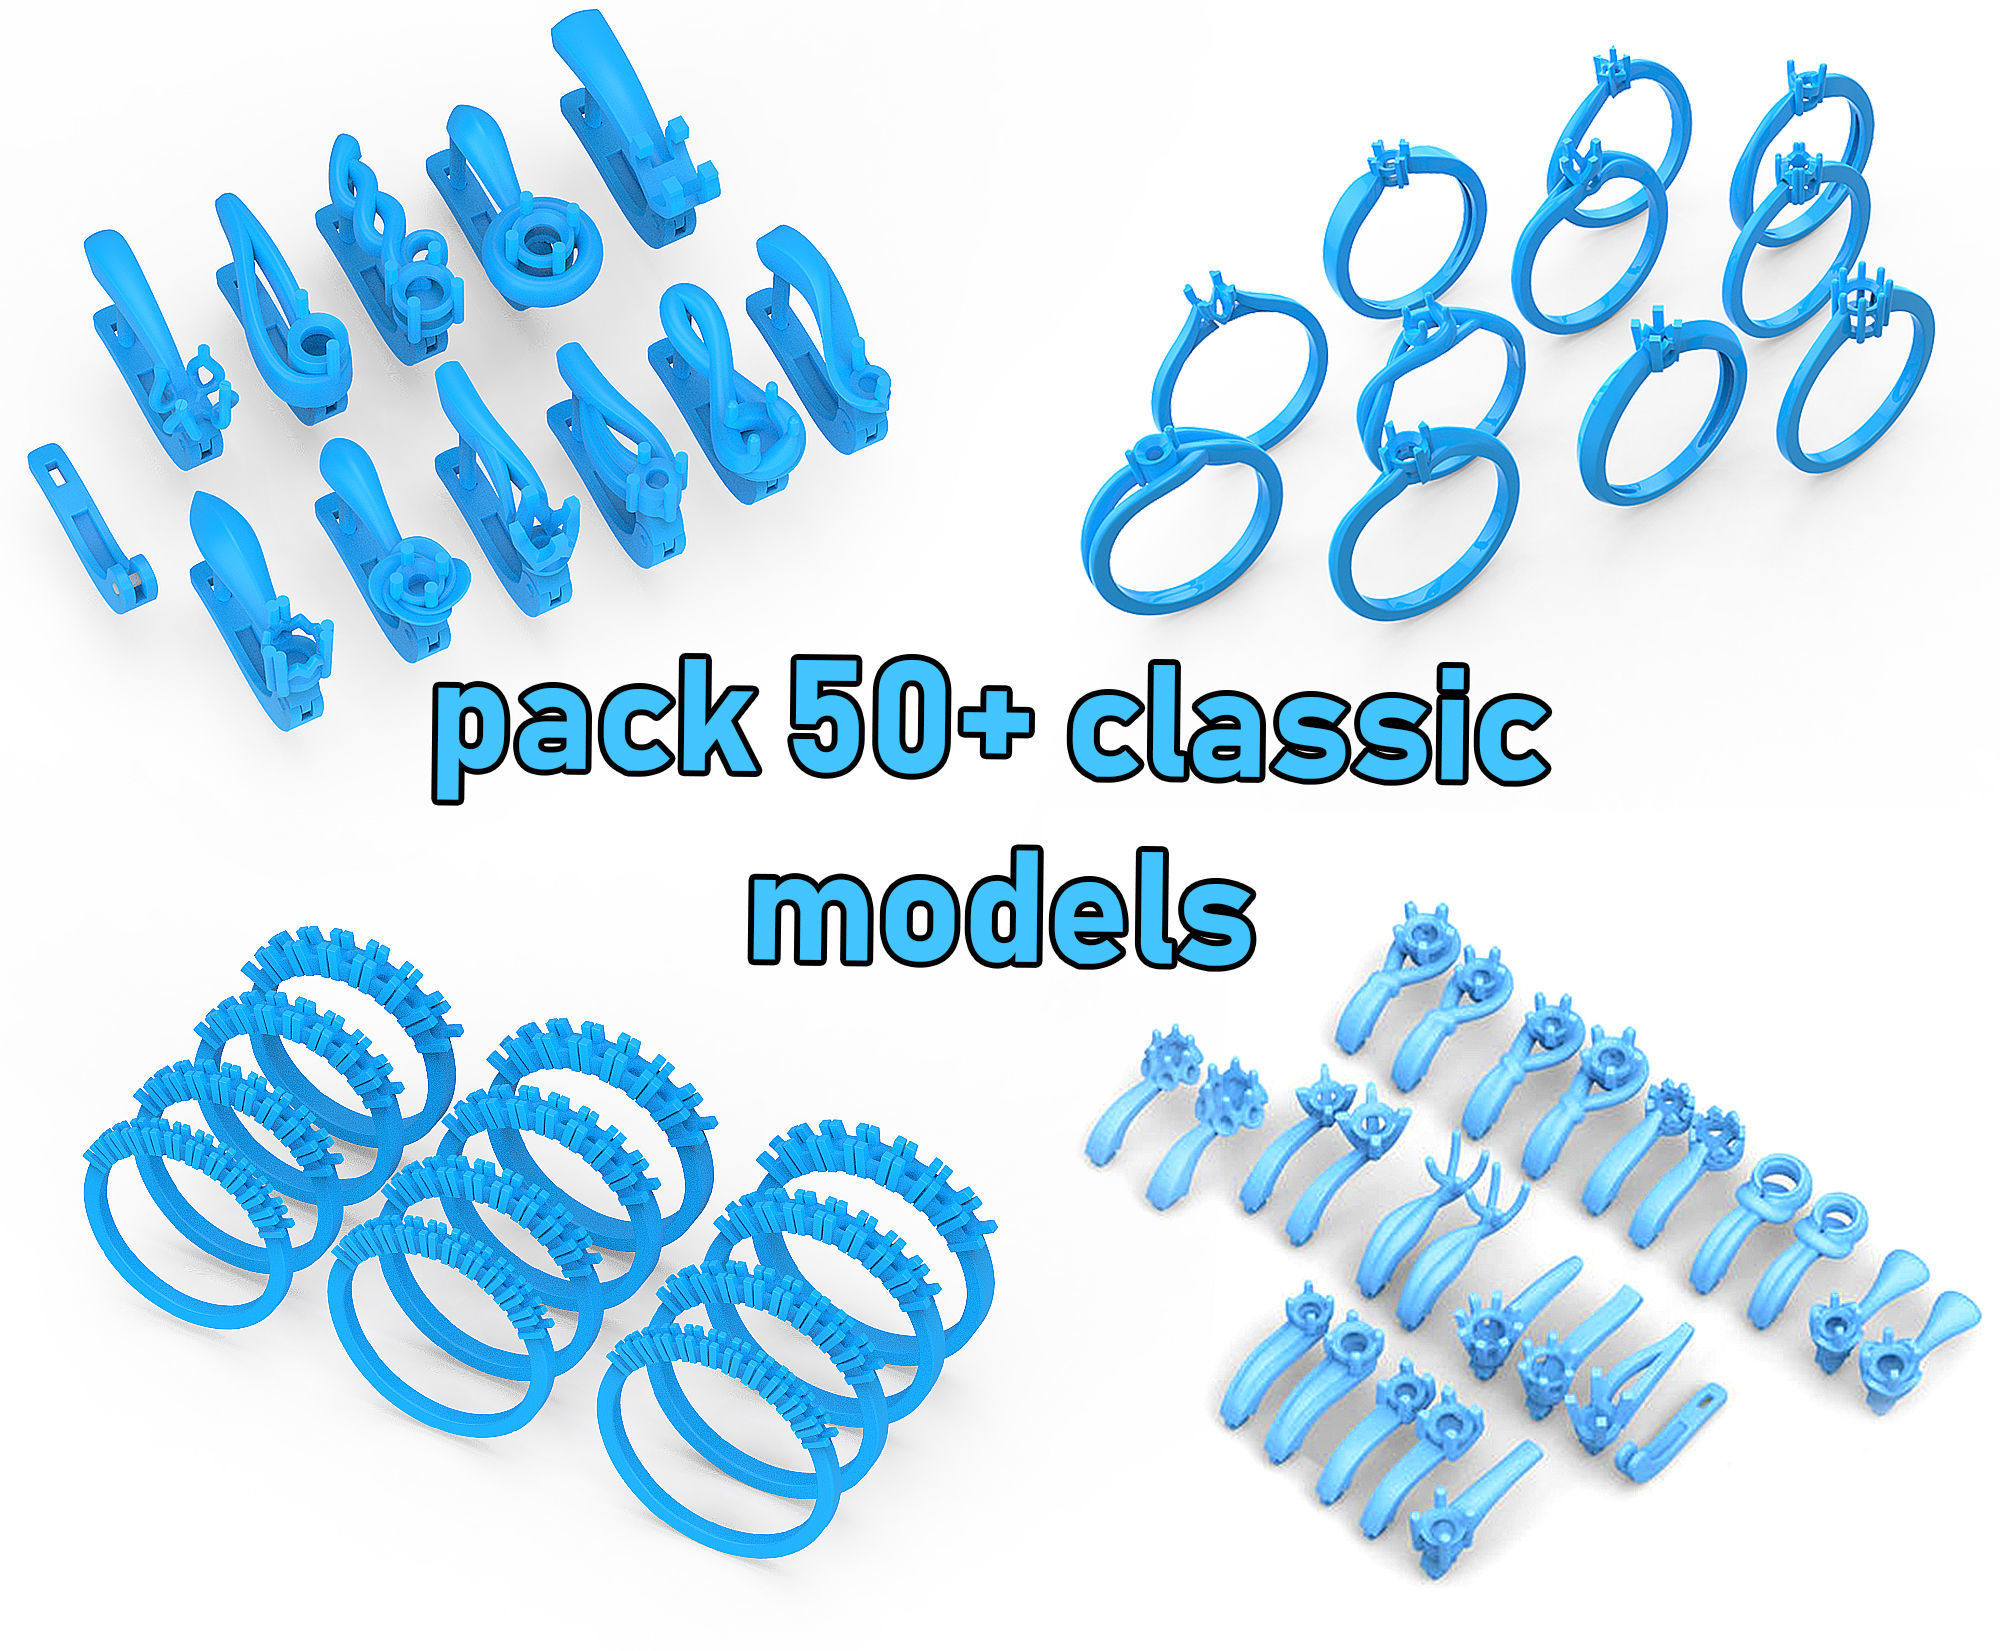 Pack of jewellery classic models